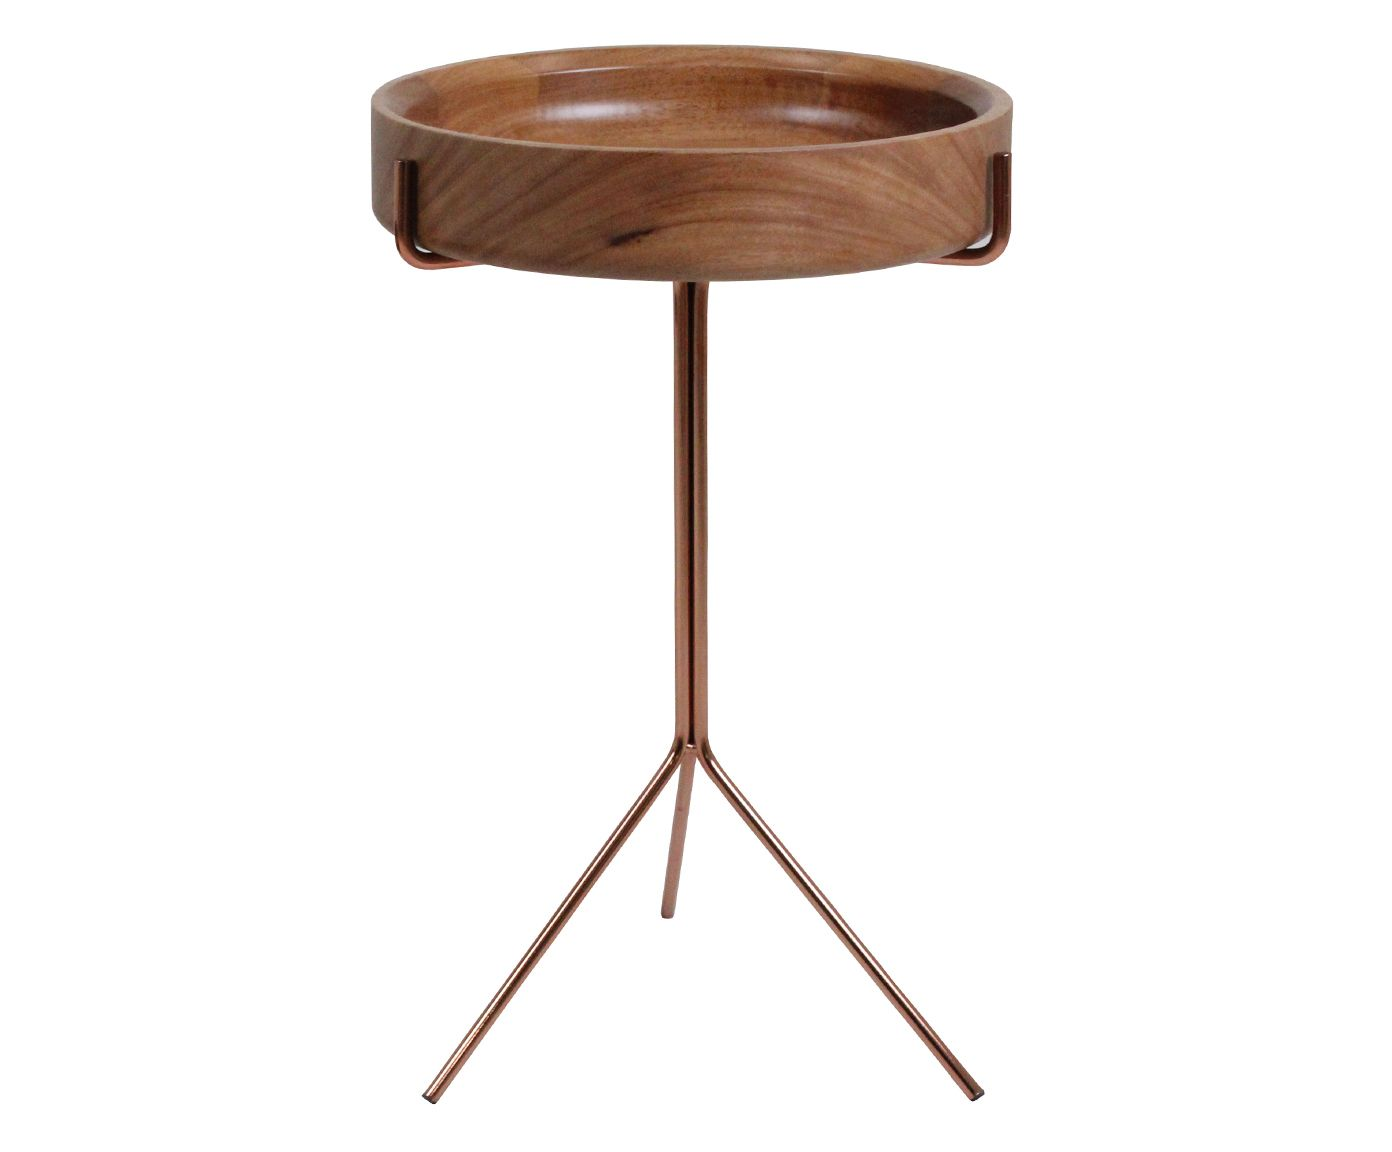 Mesa Lateral Live Marrom - 56X38cm | Westwing.com.br